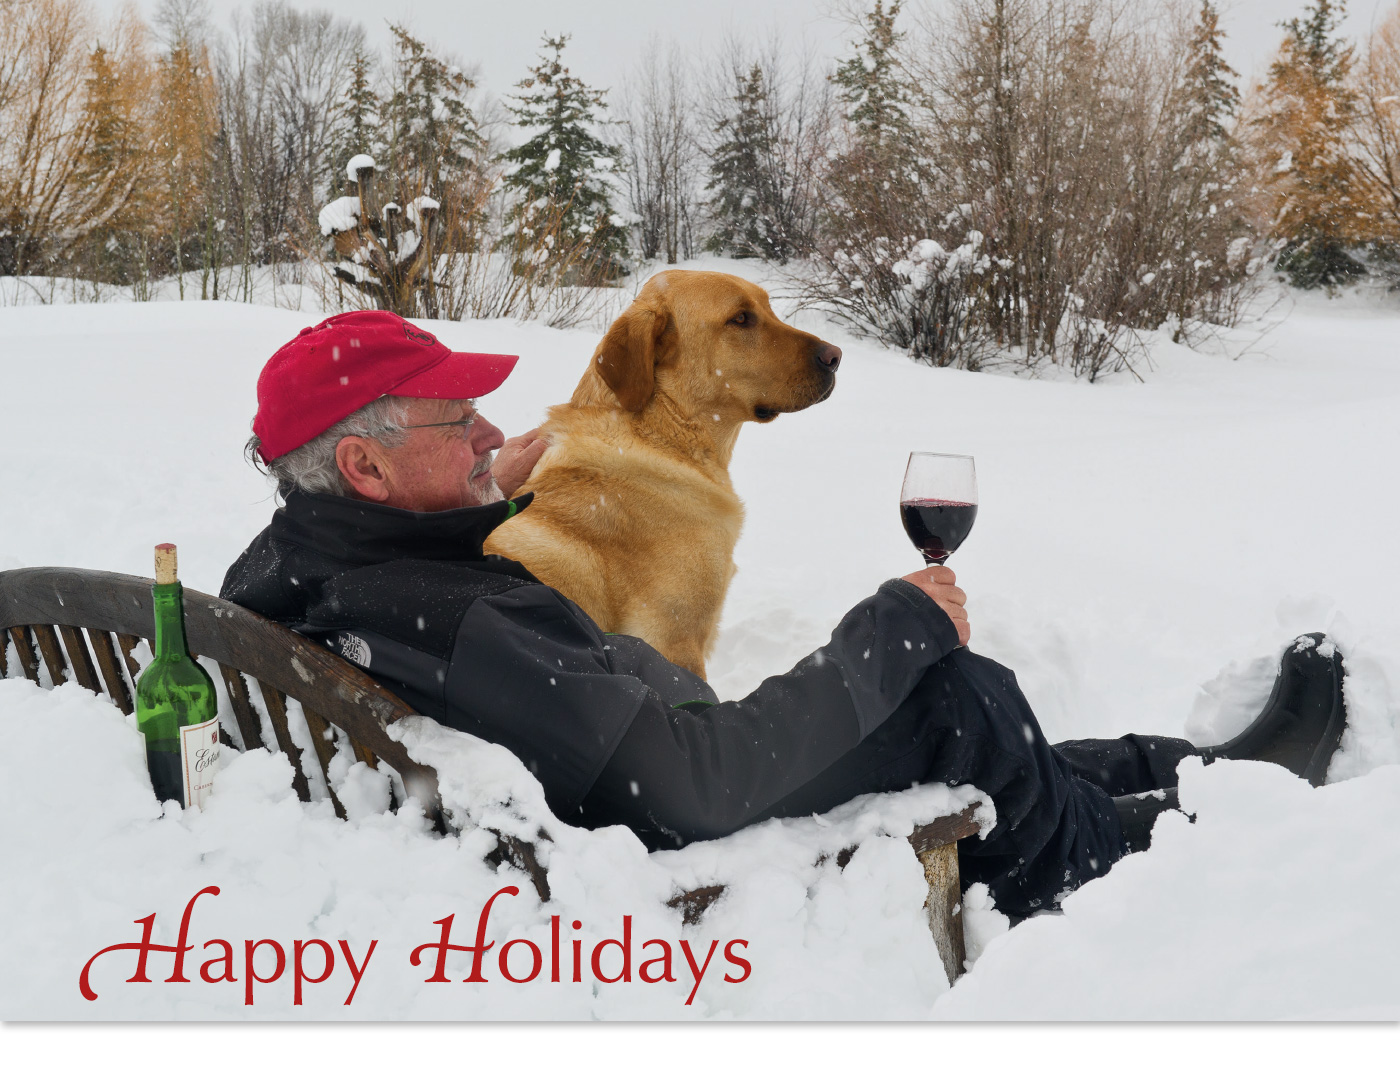 My holiday wish for you this season is that your days are filled with joy and cheer, and that your New Year be filled with peace, happiness, and prosperity.